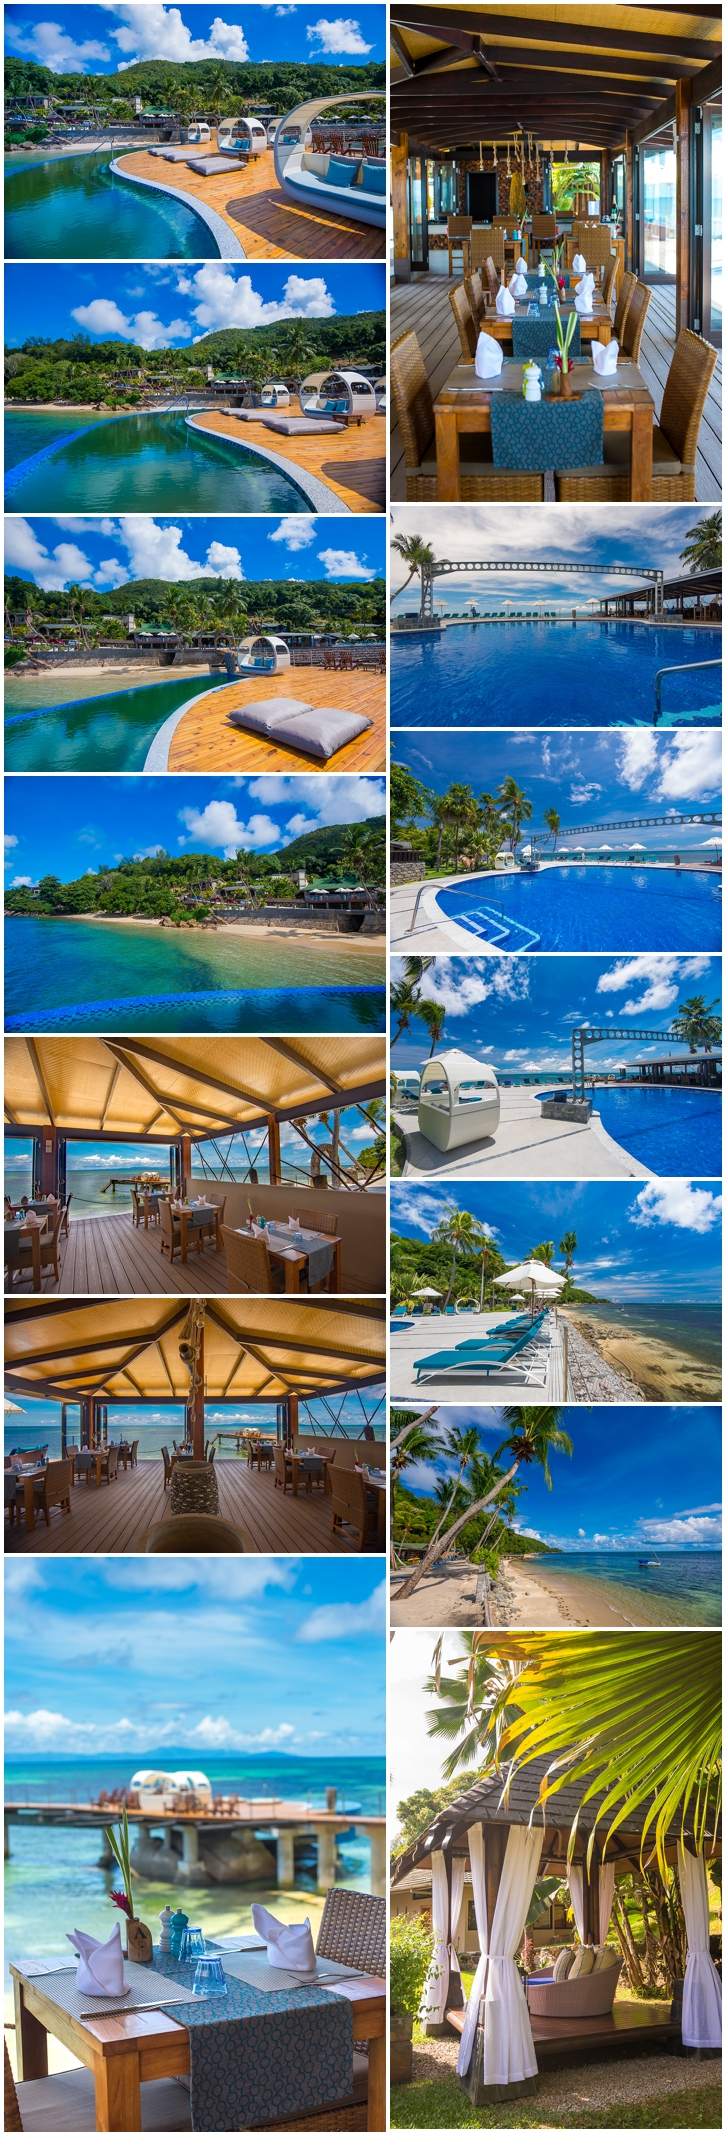 Seychelles Hotel and resort photographer